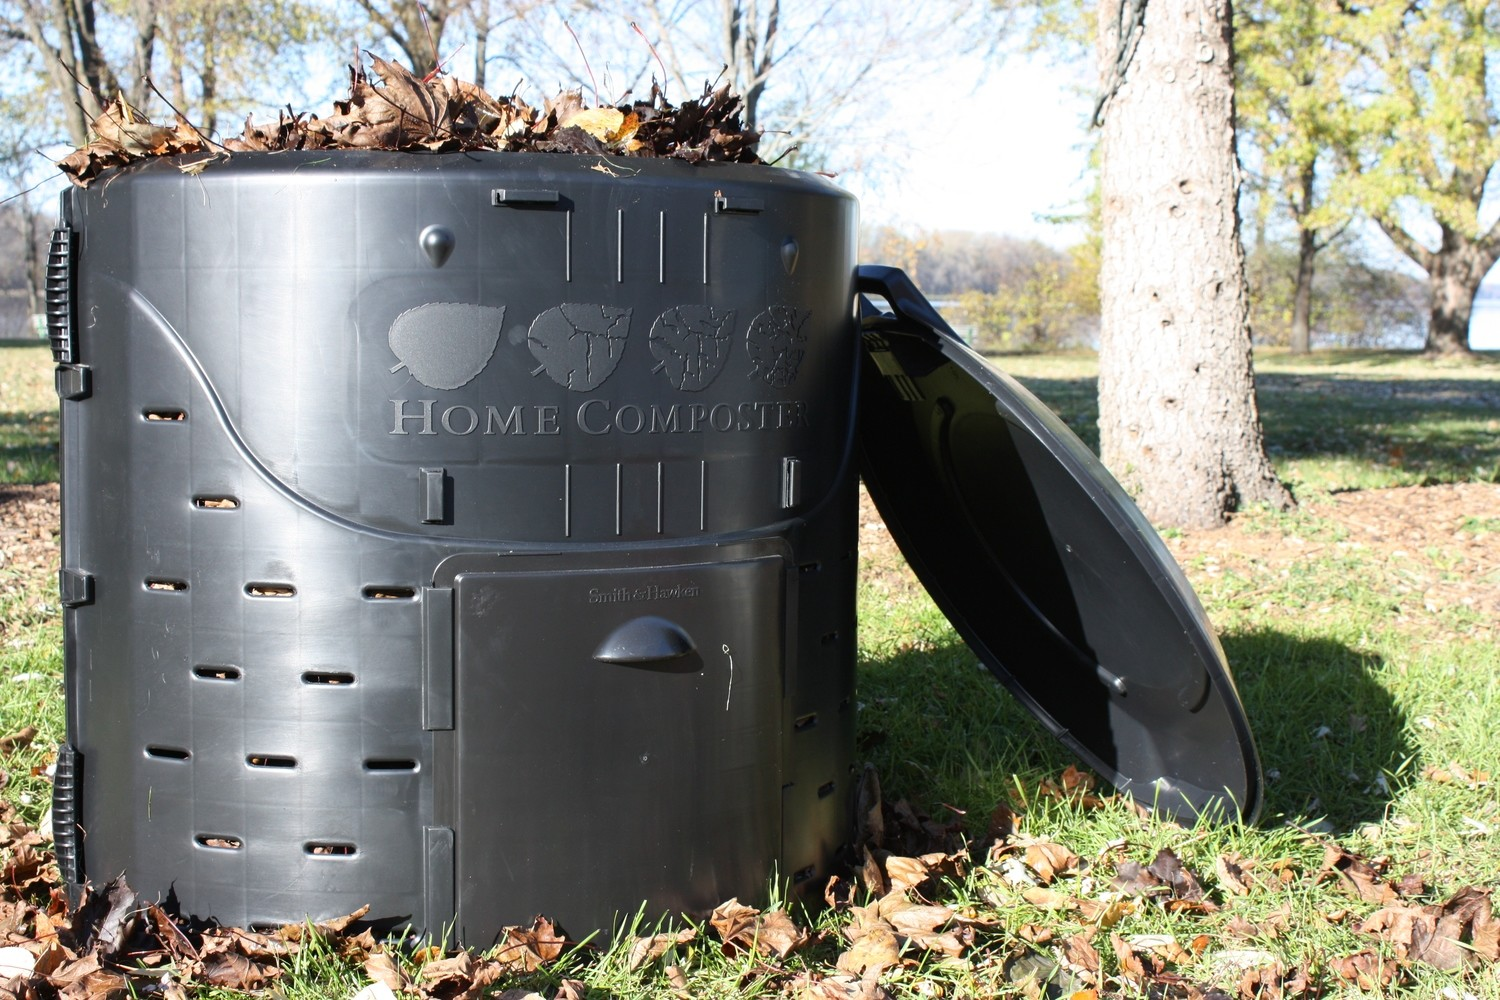 Crystal Waters Project Home Composter